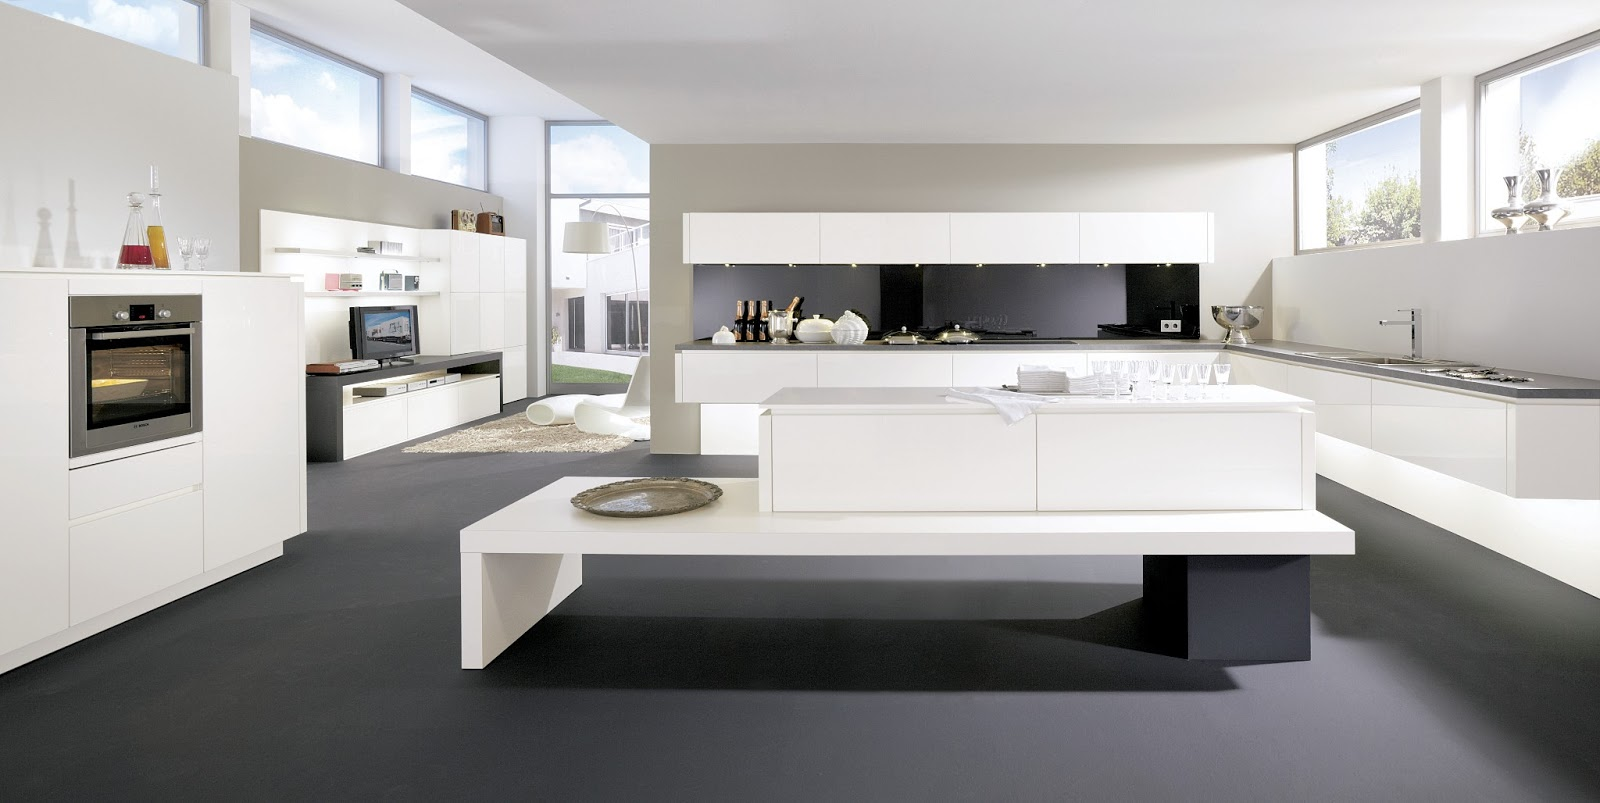 cuisine moderne ouverte sur composition de salon. Black Bedroom Furniture Sets. Home Design Ideas